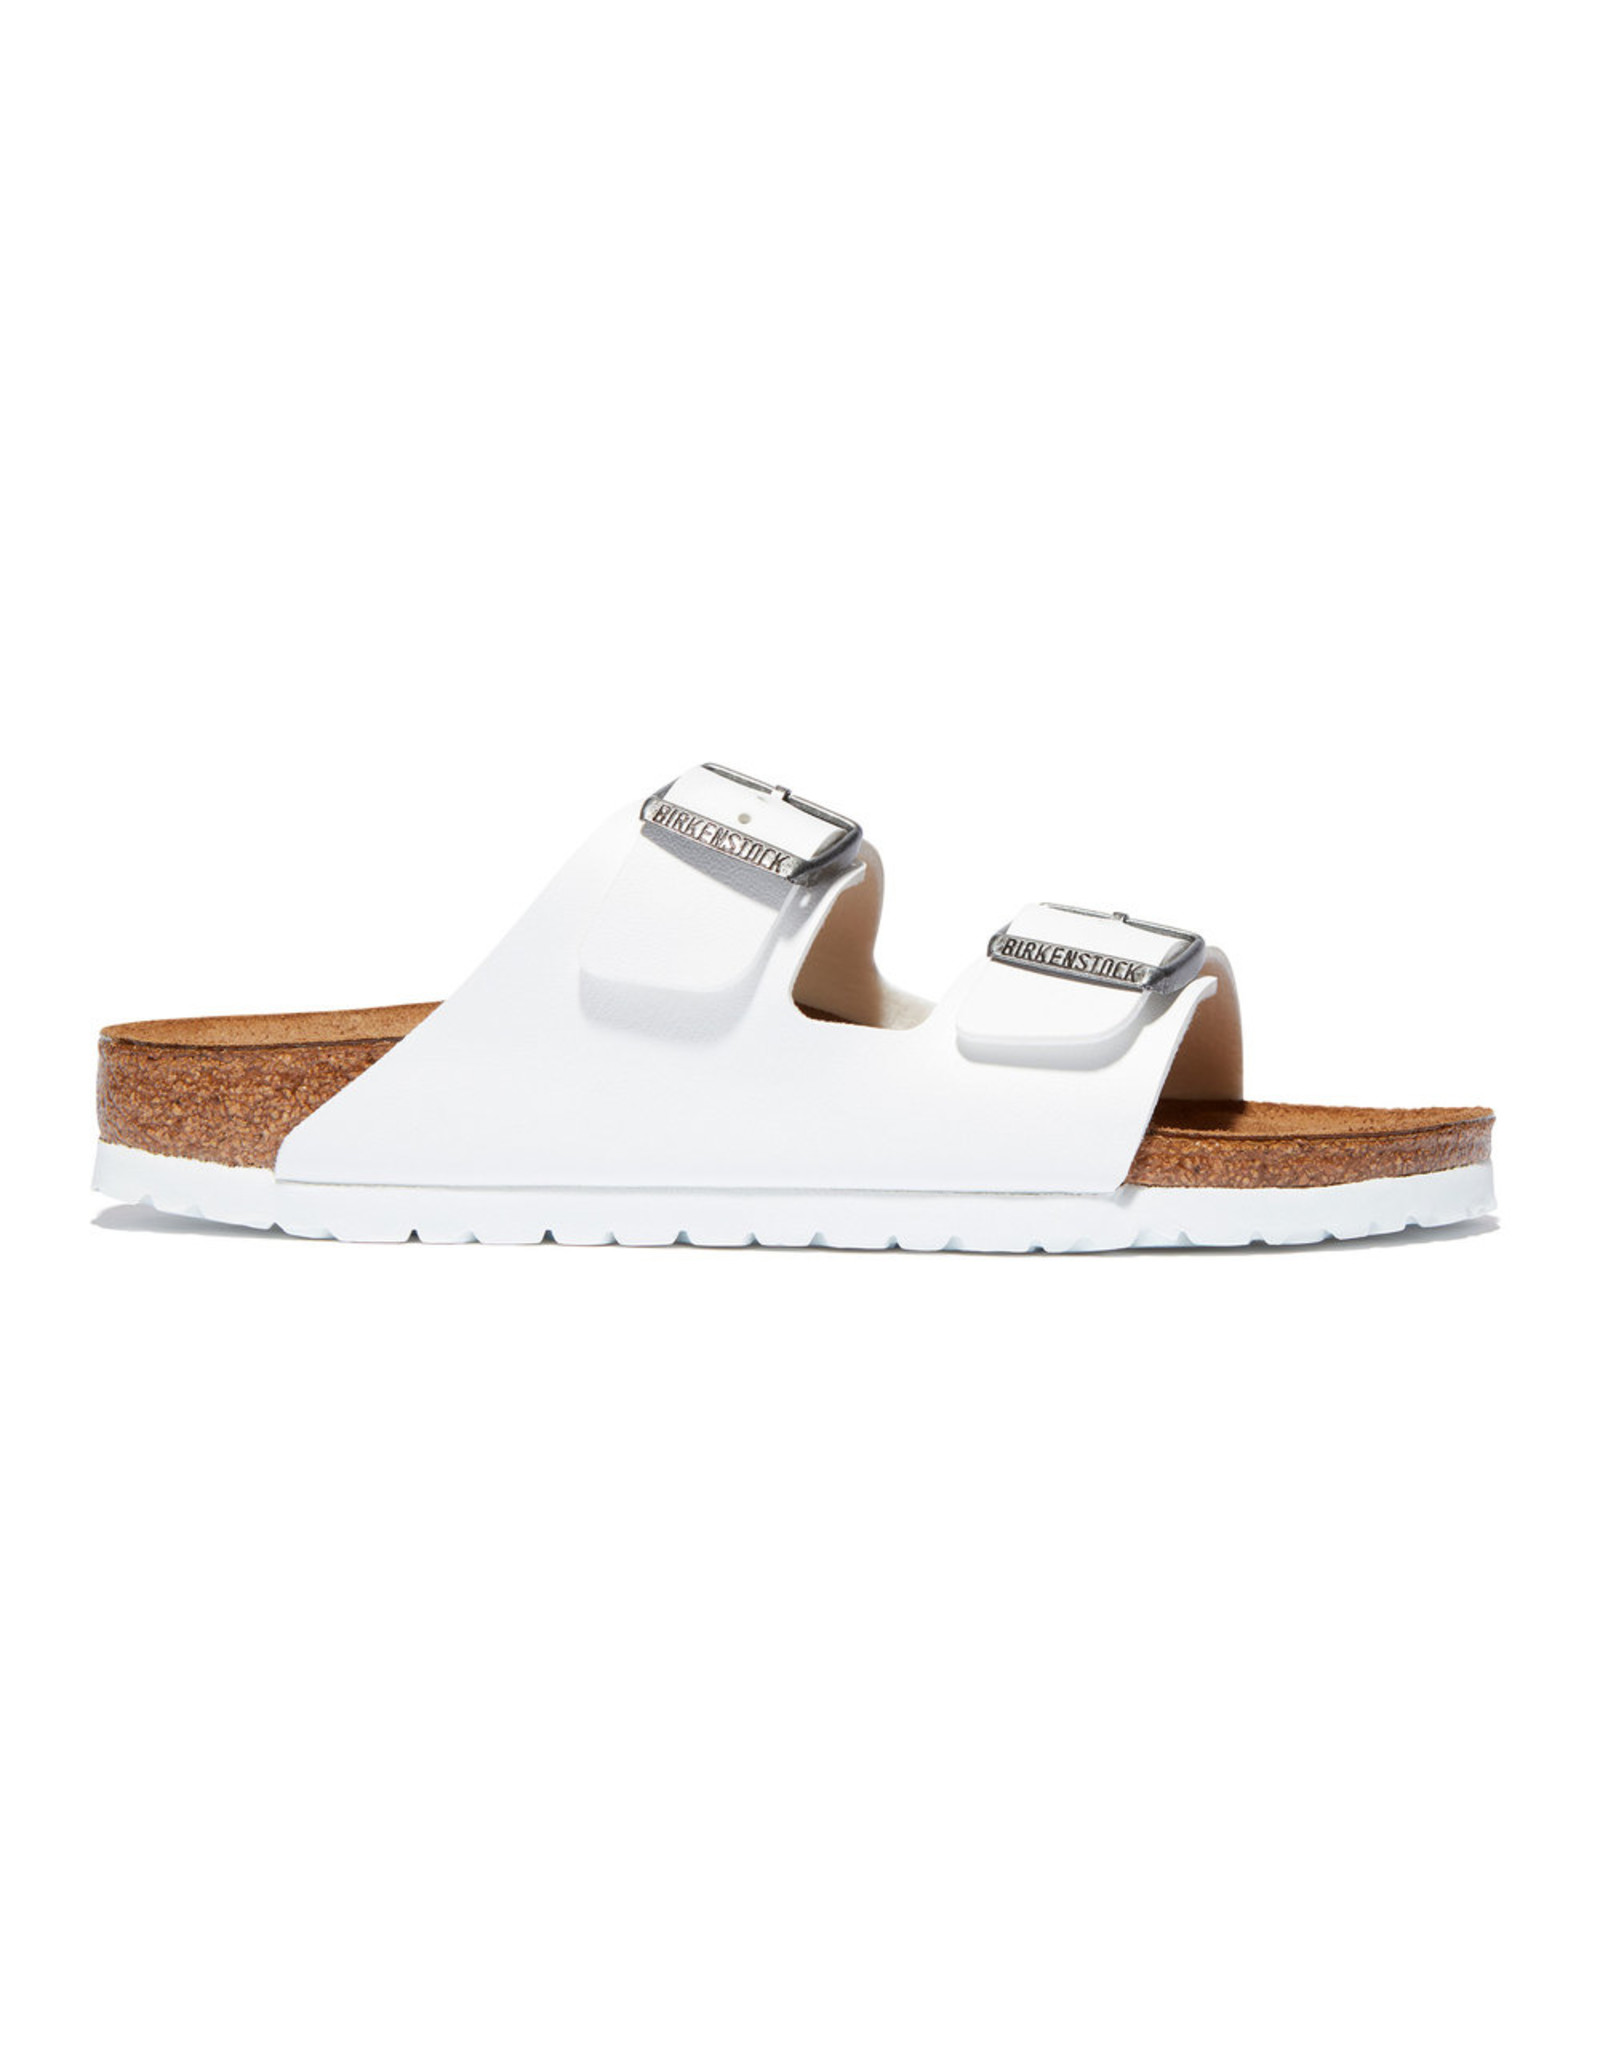 Birkenstock Arizona Birkenstock (Color: White / Birko-Flor, Size: IT39)